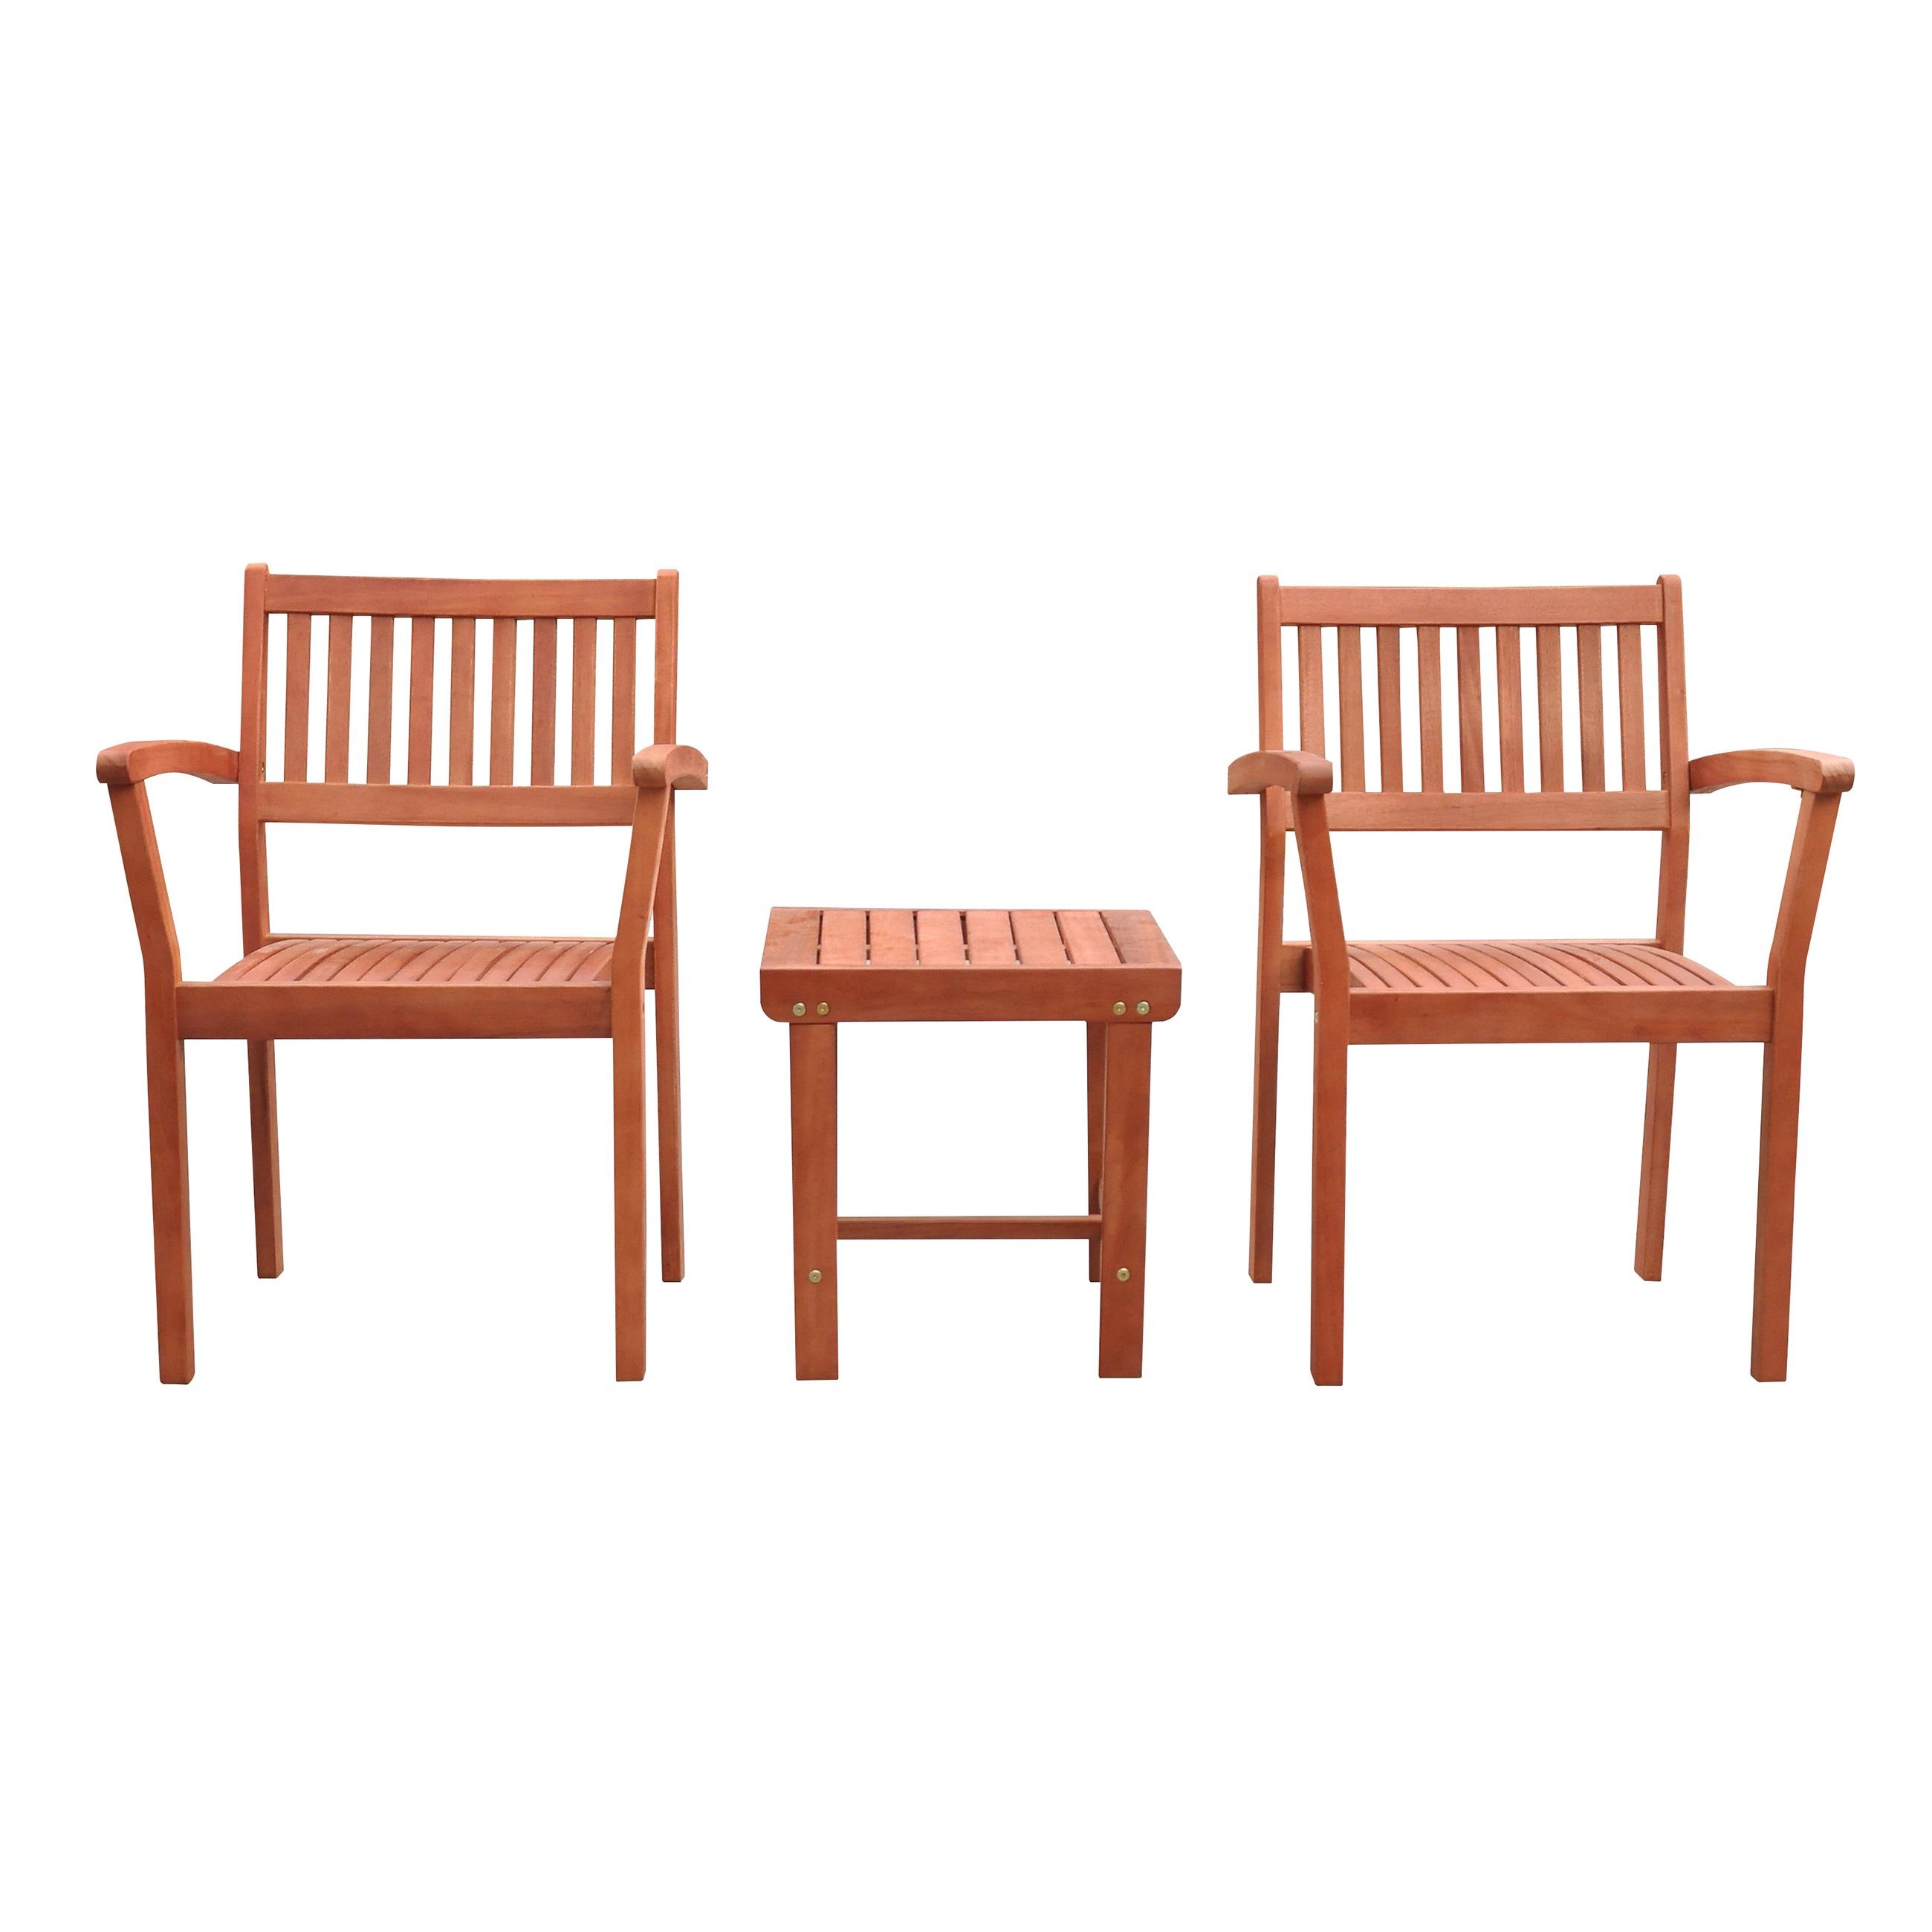 Malibu Outdoor Patio 3-Piece Wood Dining Set with Stacking Chair